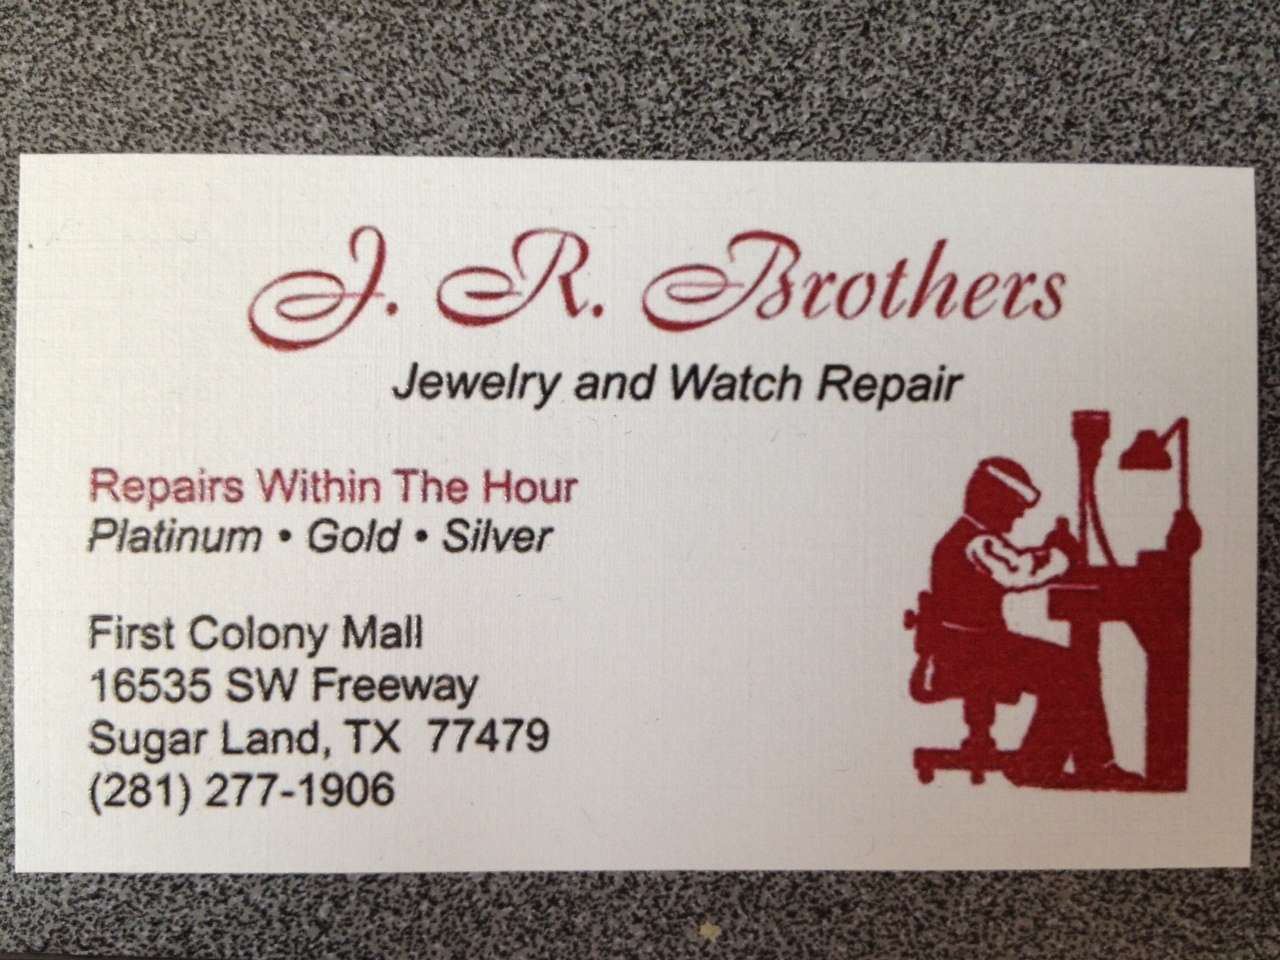 J.R. Brothers Jewelry and Watch Repair